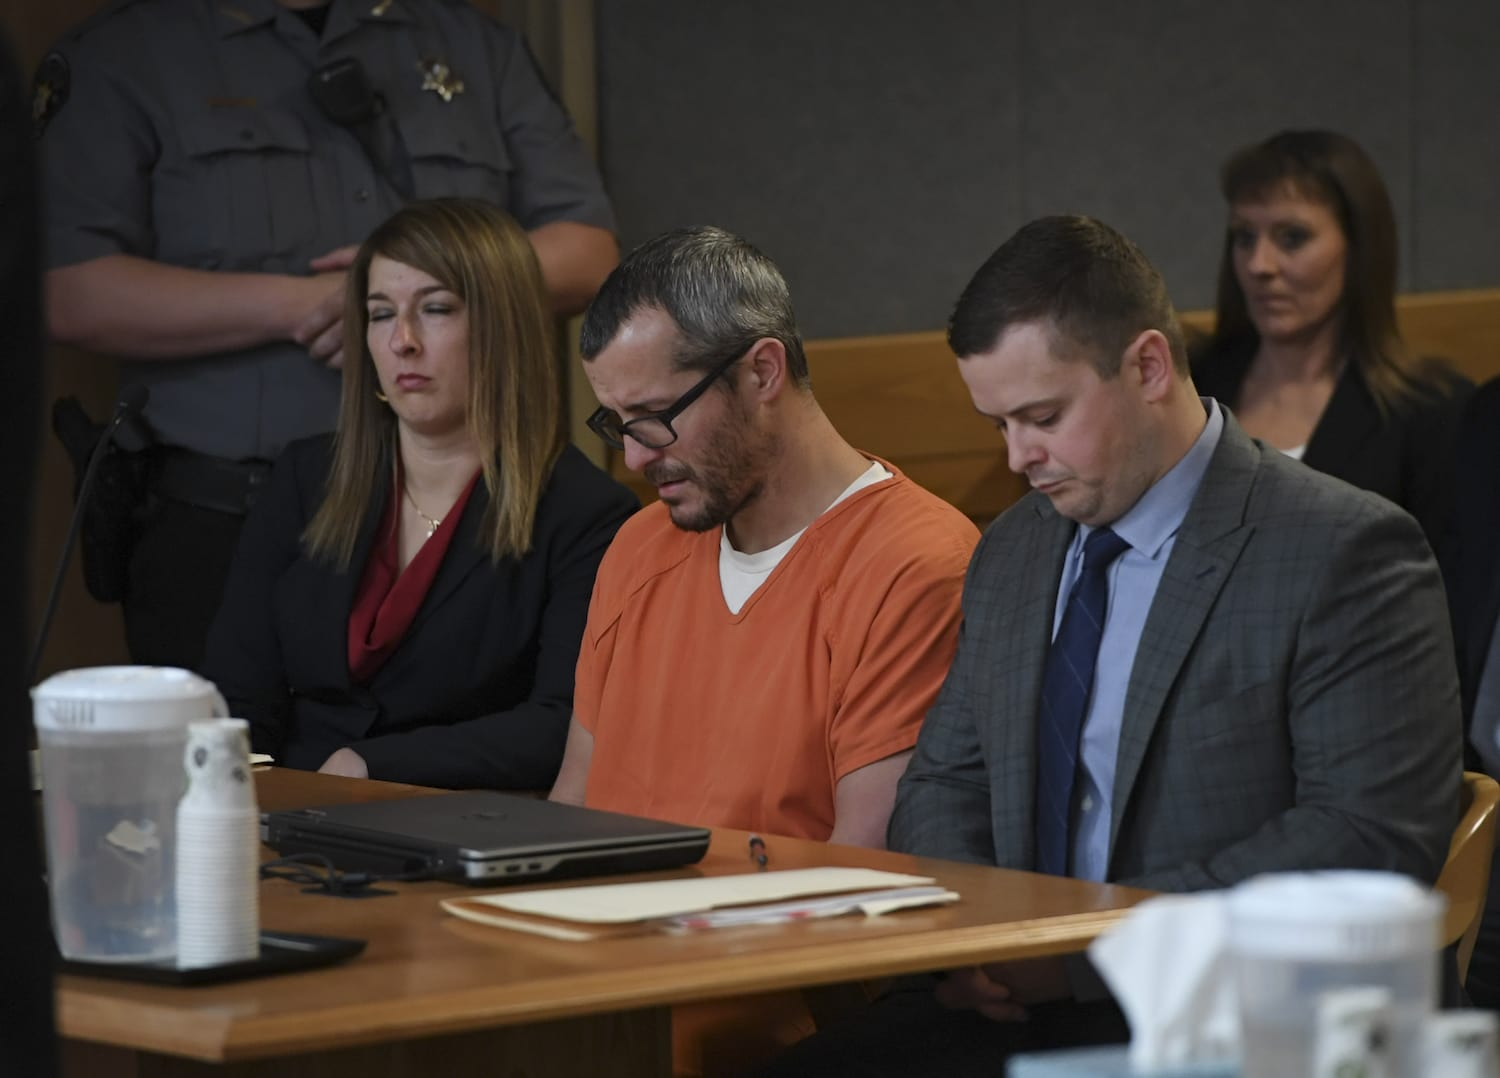 Christopher Watts sits in court for his sentencing hearing at the Weld County Courthouse on November 19, 2018 in Greeley, Colorado. (Photo by RJ Sangosti/The Denver Post via Getty Images)